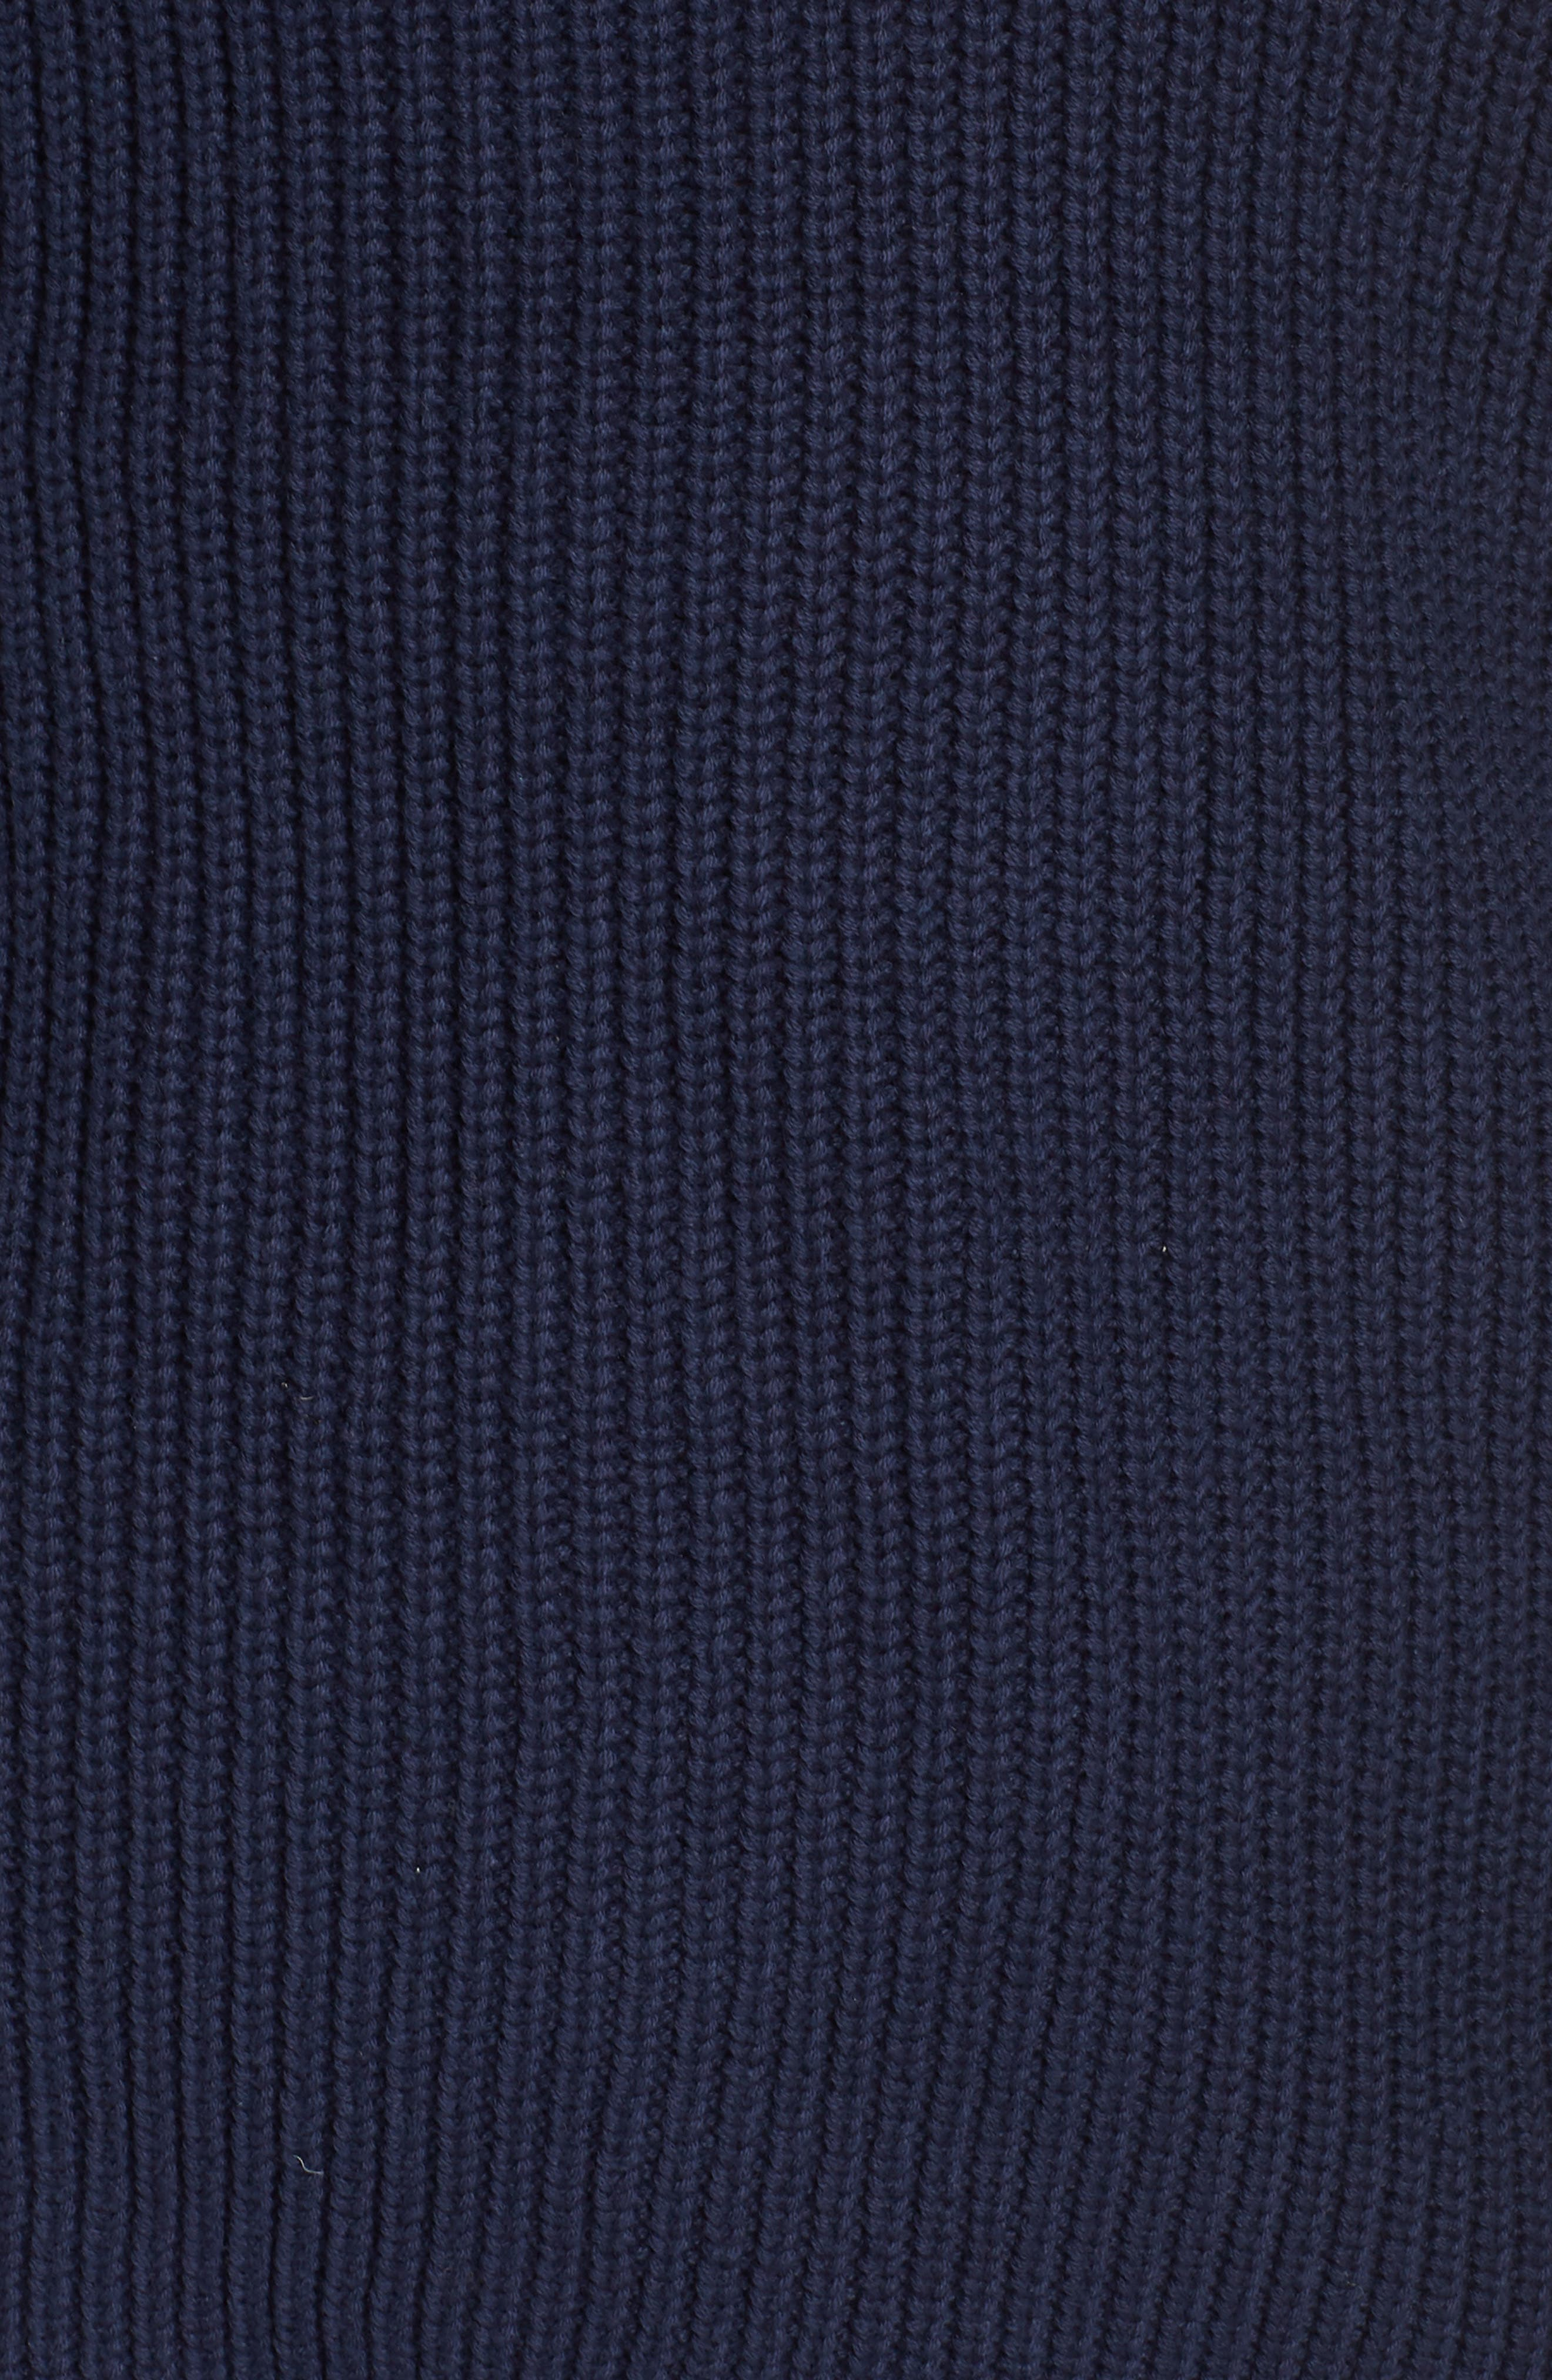 Tennis Sweater,                             Alternate thumbnail 11, color,                             410